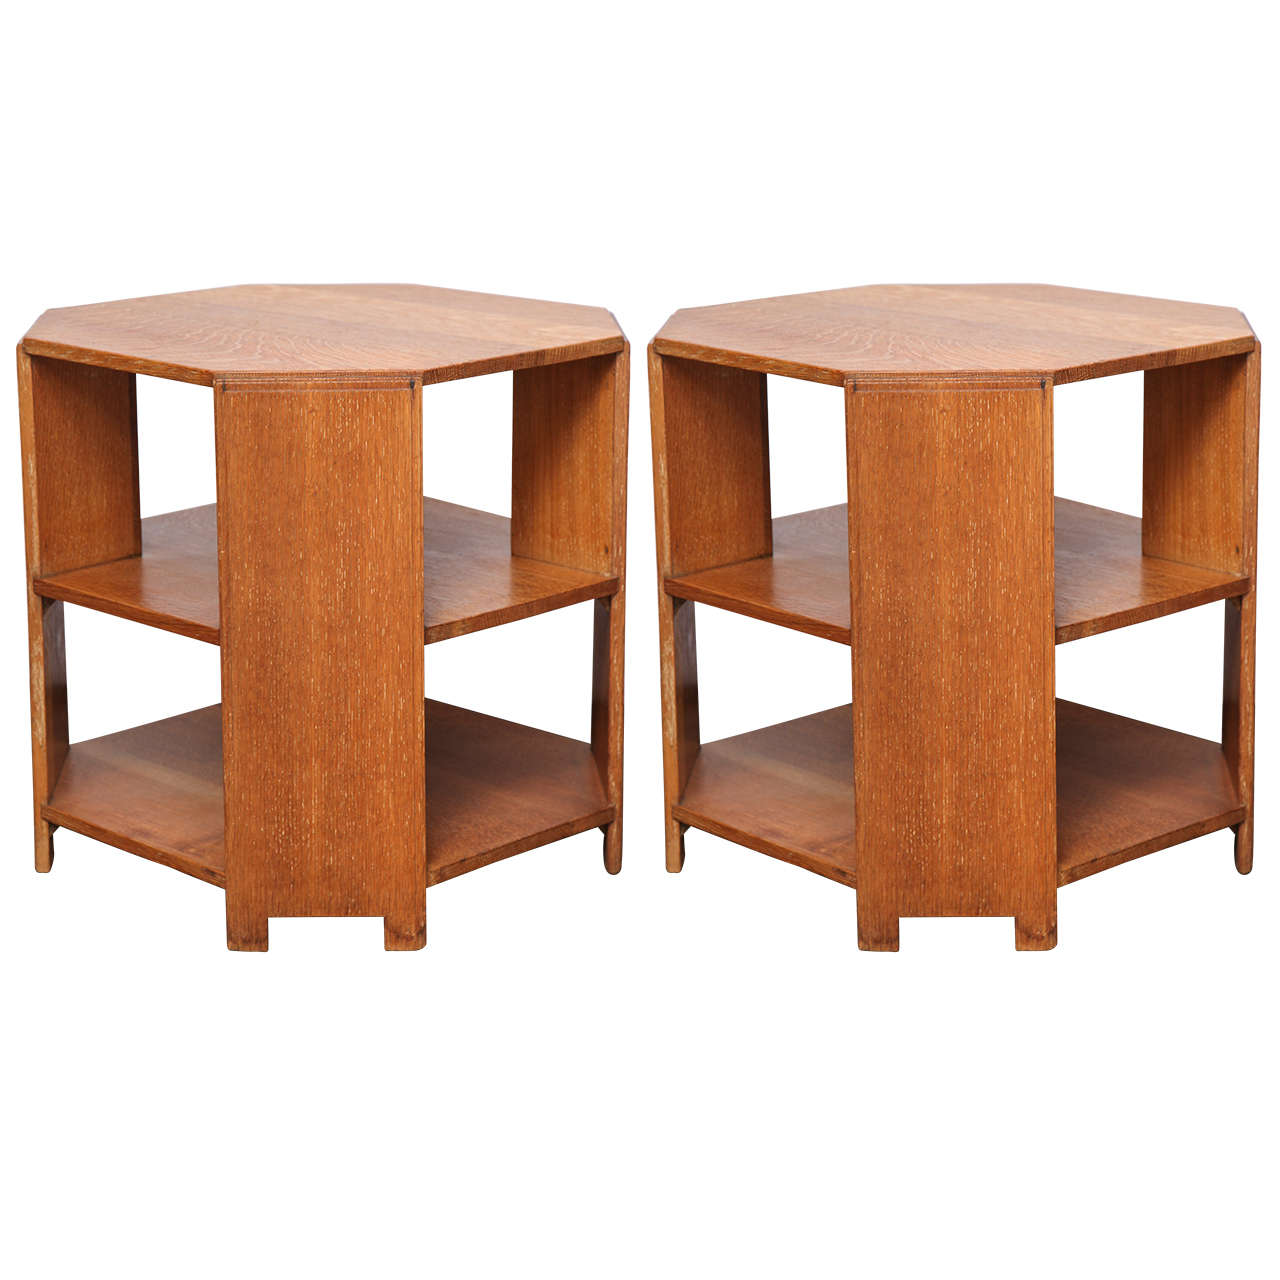 Pair Of Heal's And Son Oak Book Tables At 1stdibs. Full resolution  photo, nominally Width 1280 Height 1280 pixels, photo with #A95122.